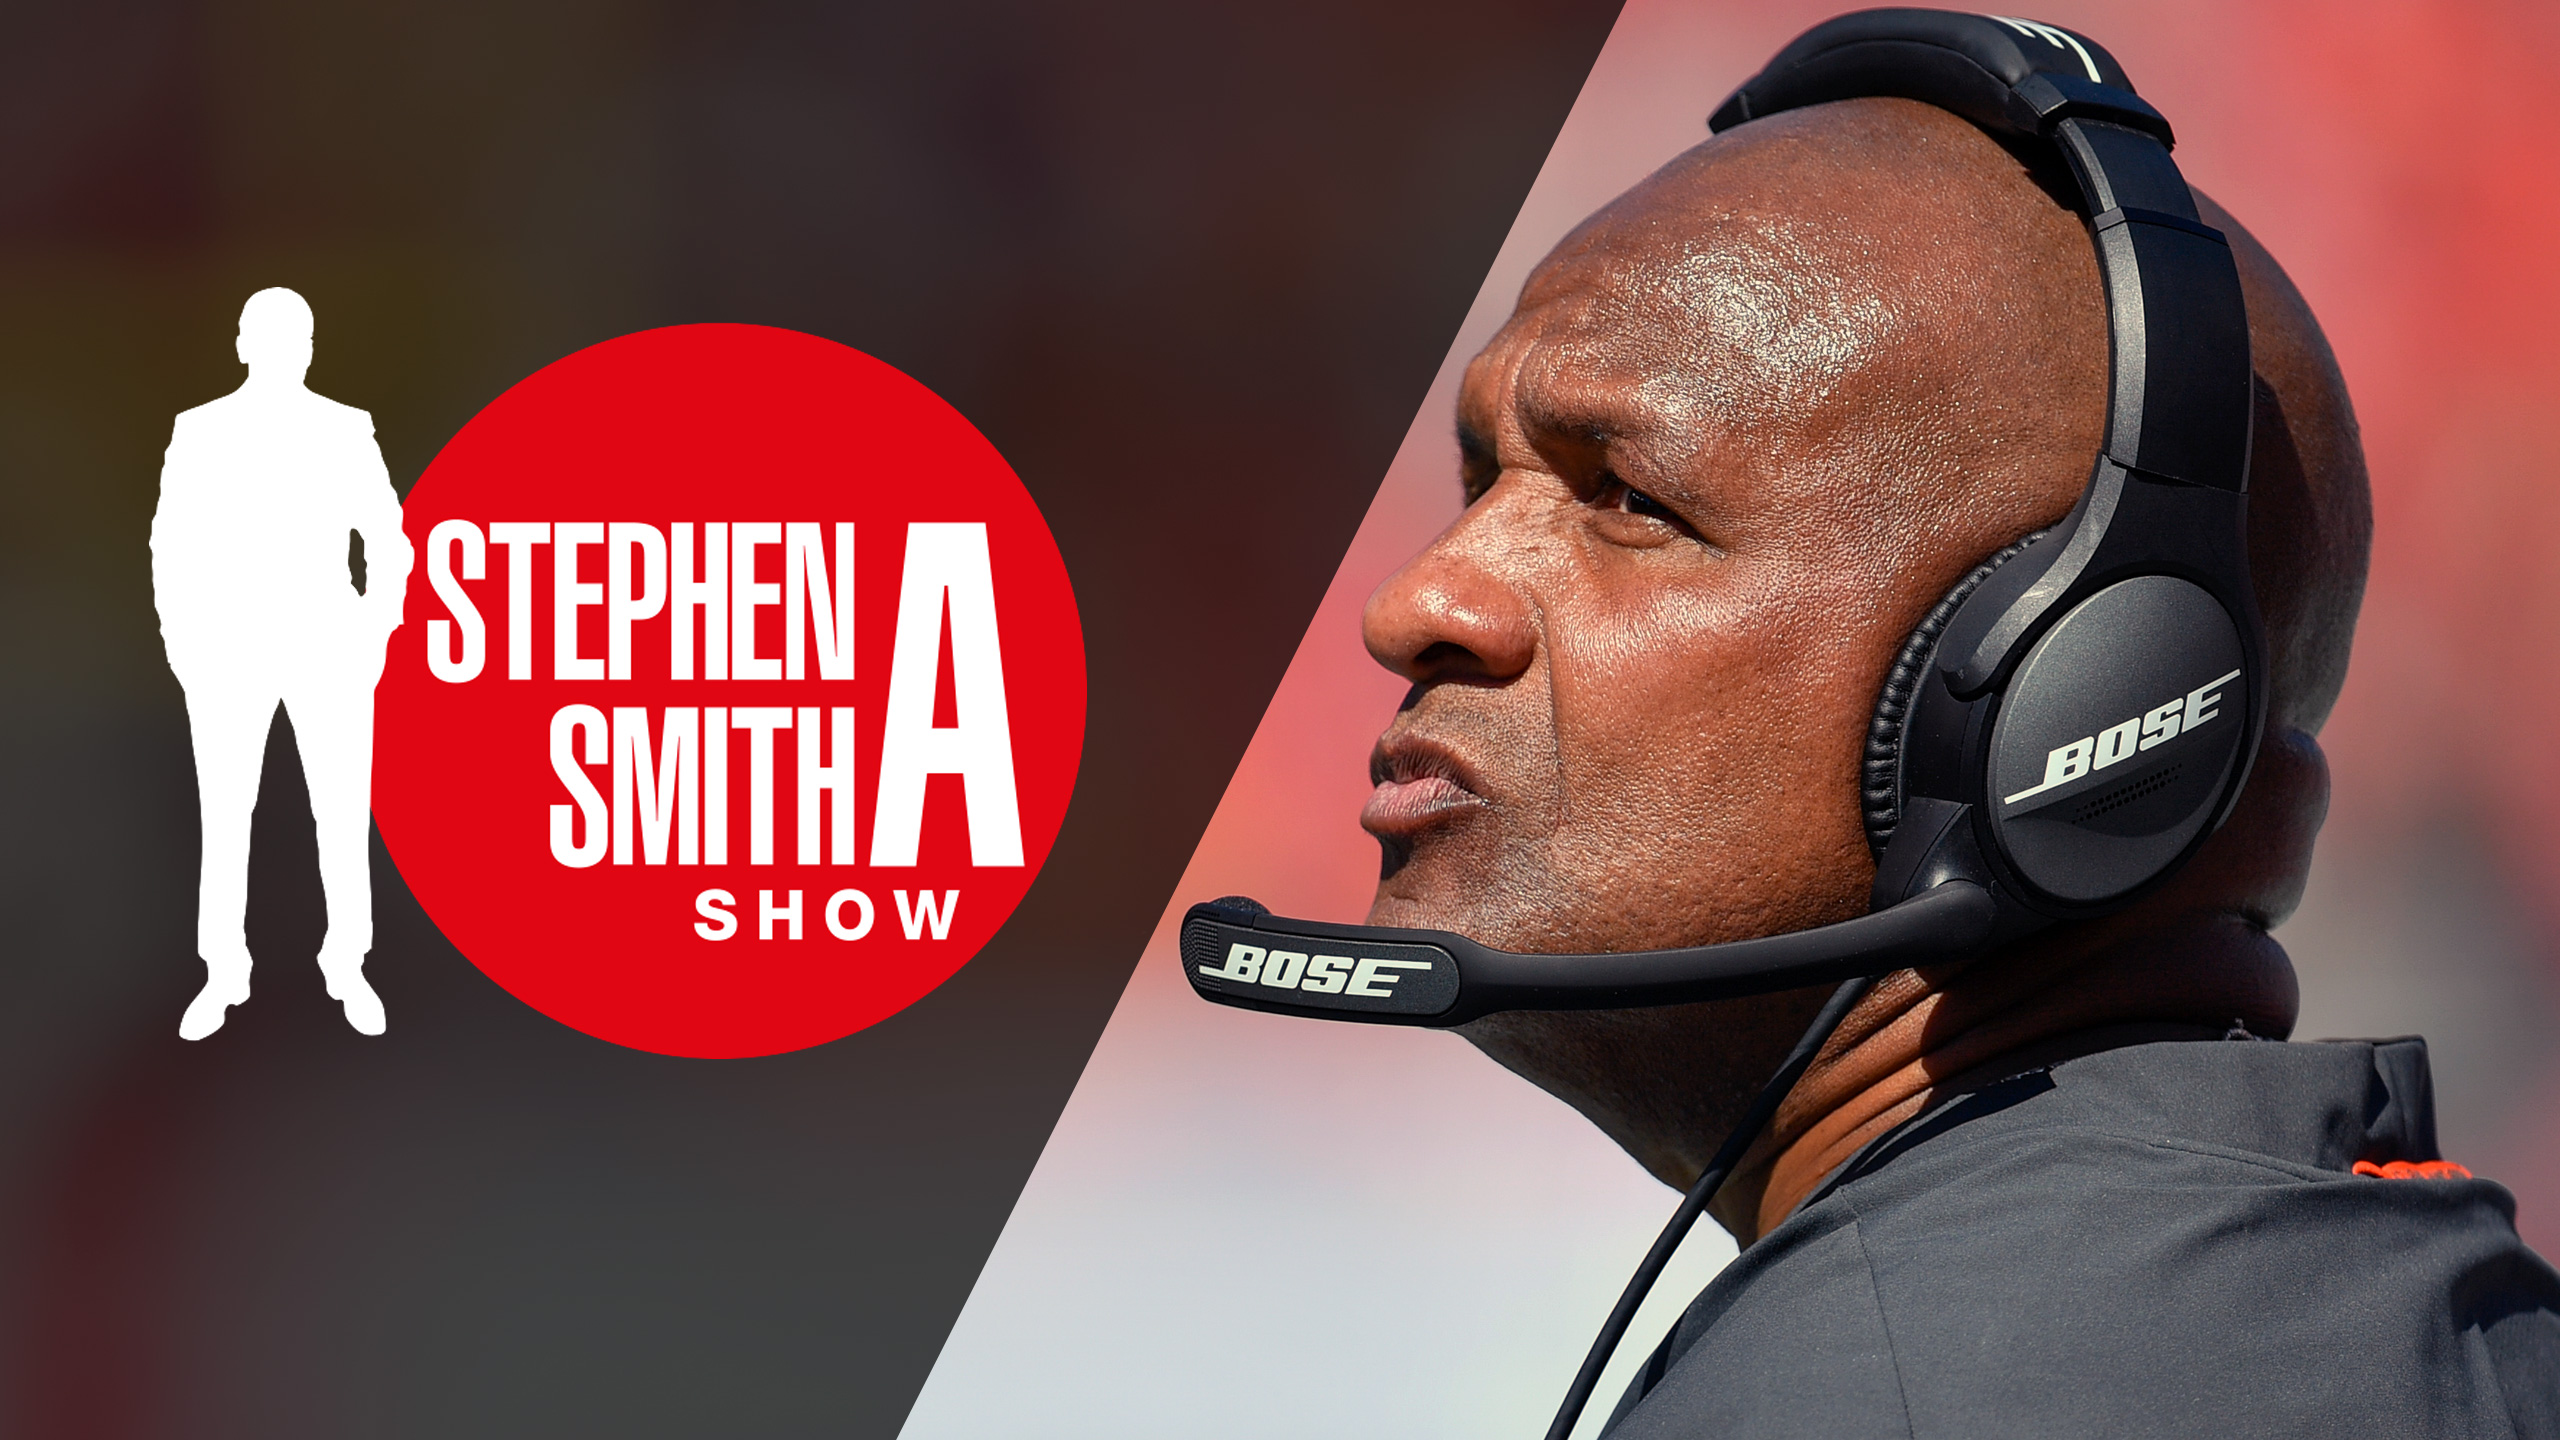 Tue, 11/13 - The Stephen A. Smith Show